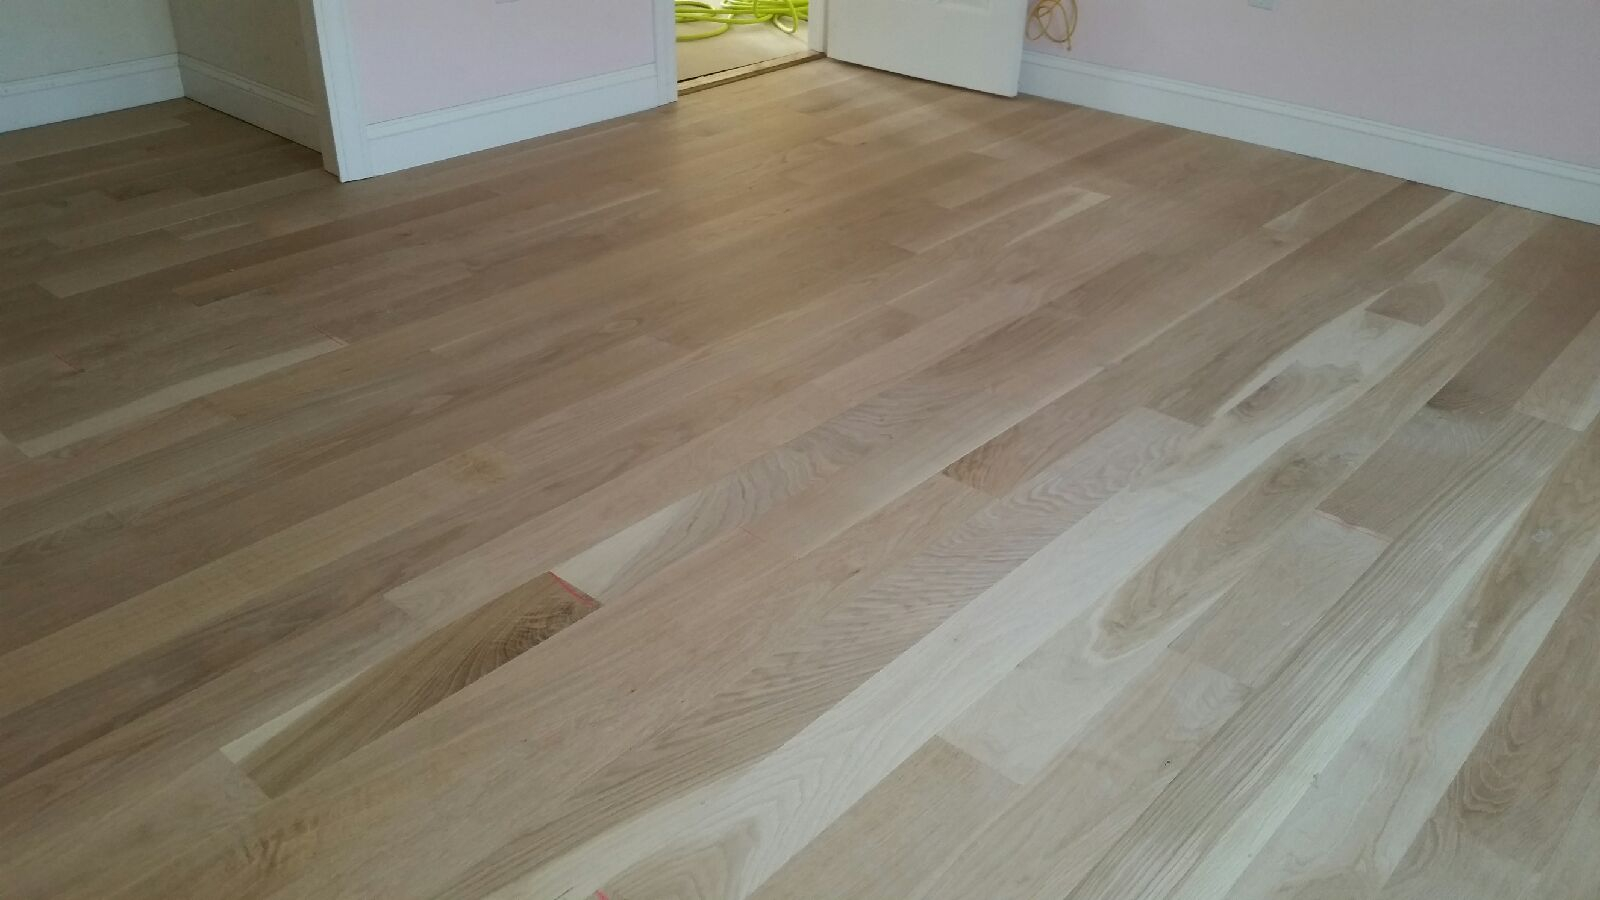 Brazilian ebony hardwood flooring - We Ve Done It All From Classic Oak To Exotic Hardwoods Like Brazilian Cherry Each And Every Floor Is Installed With Patience And Care Which Is What Sets